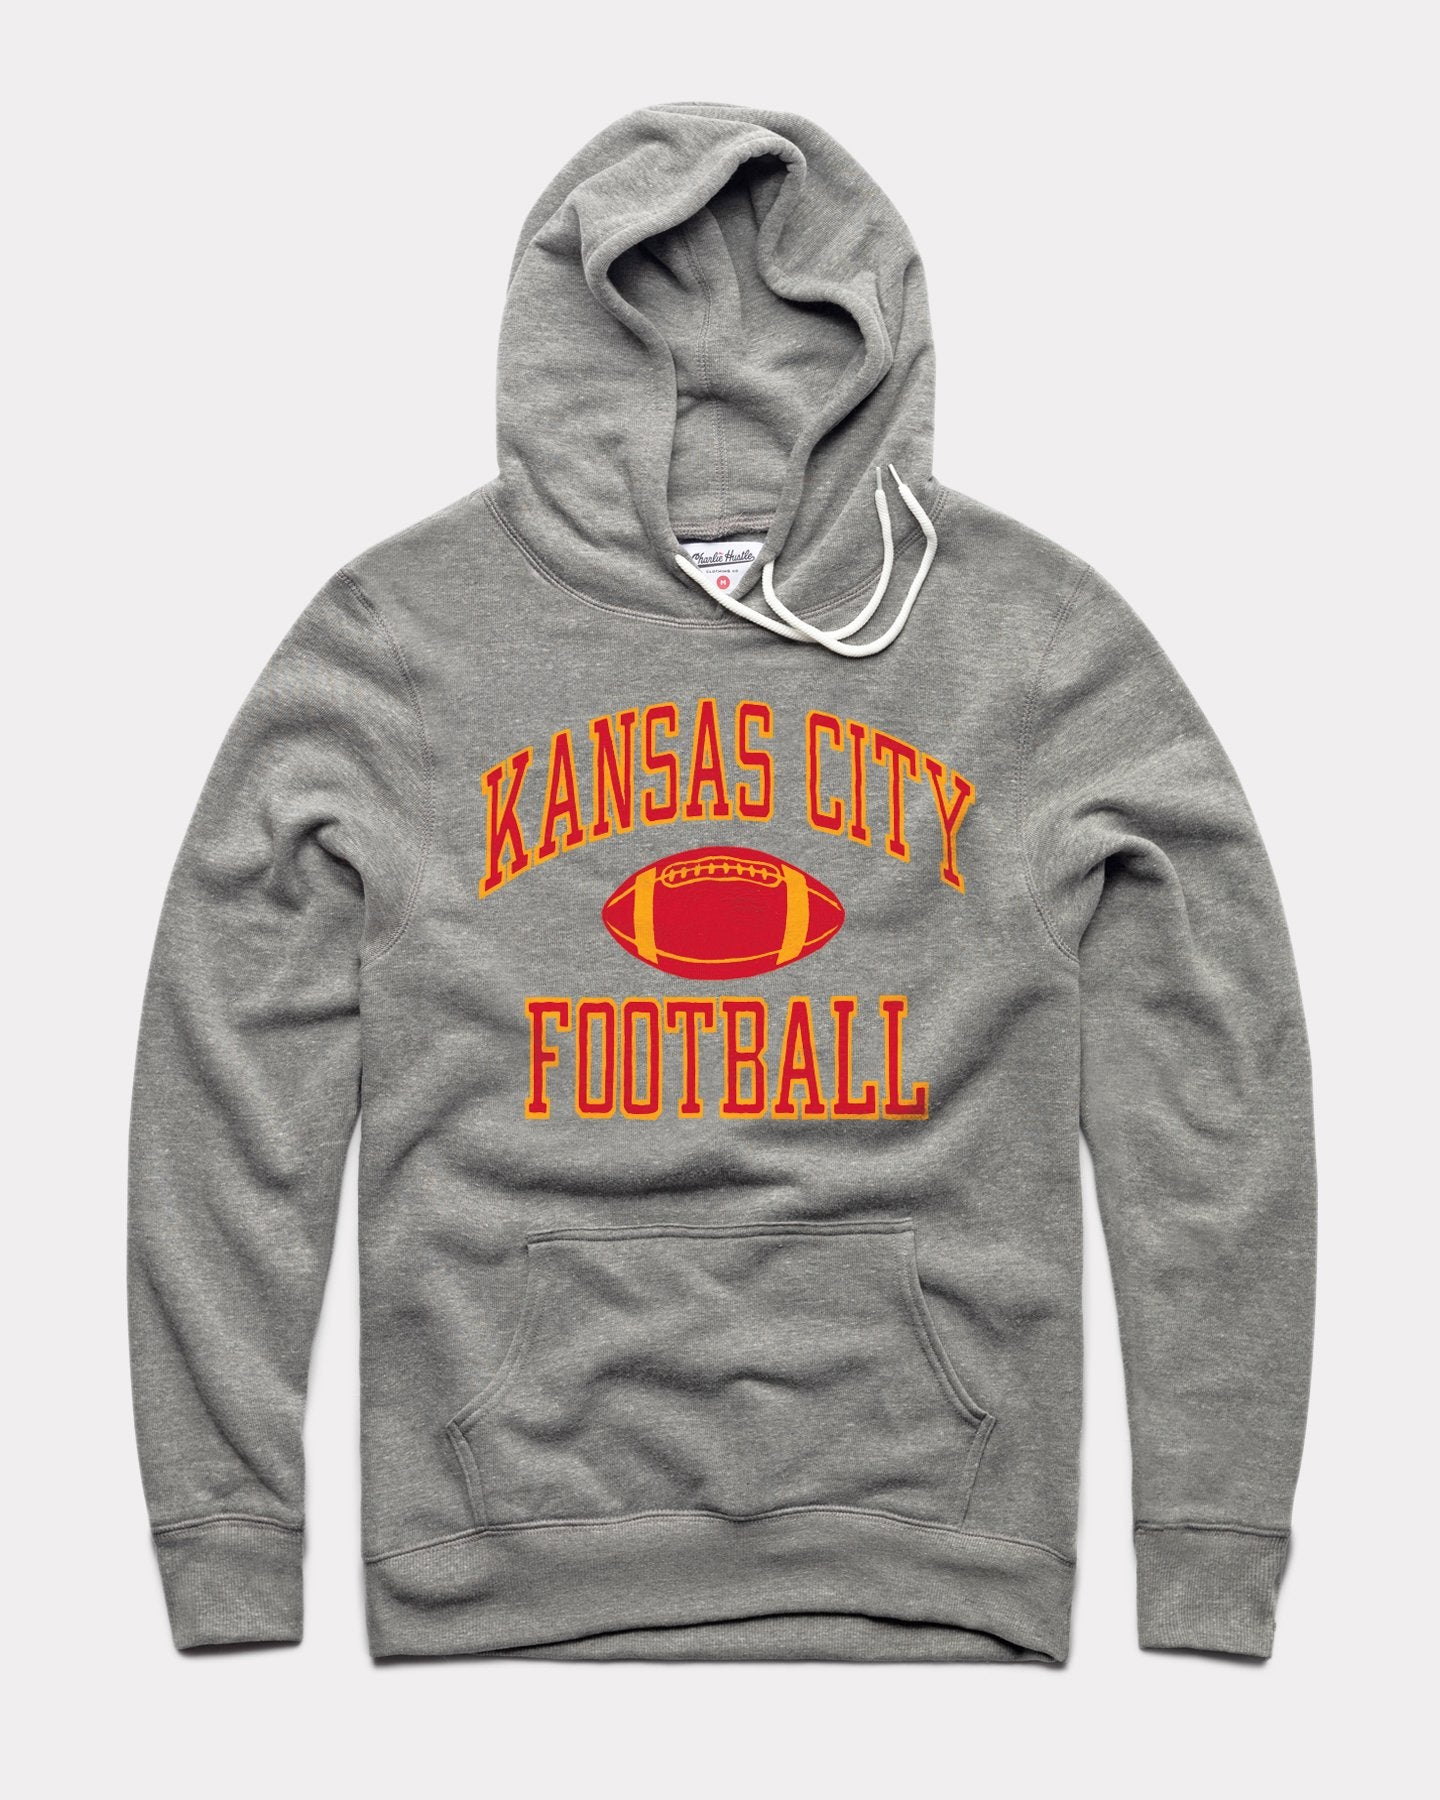 Grey Kansas City Football Vintage Arrowhead Hoodie Sweatshirt